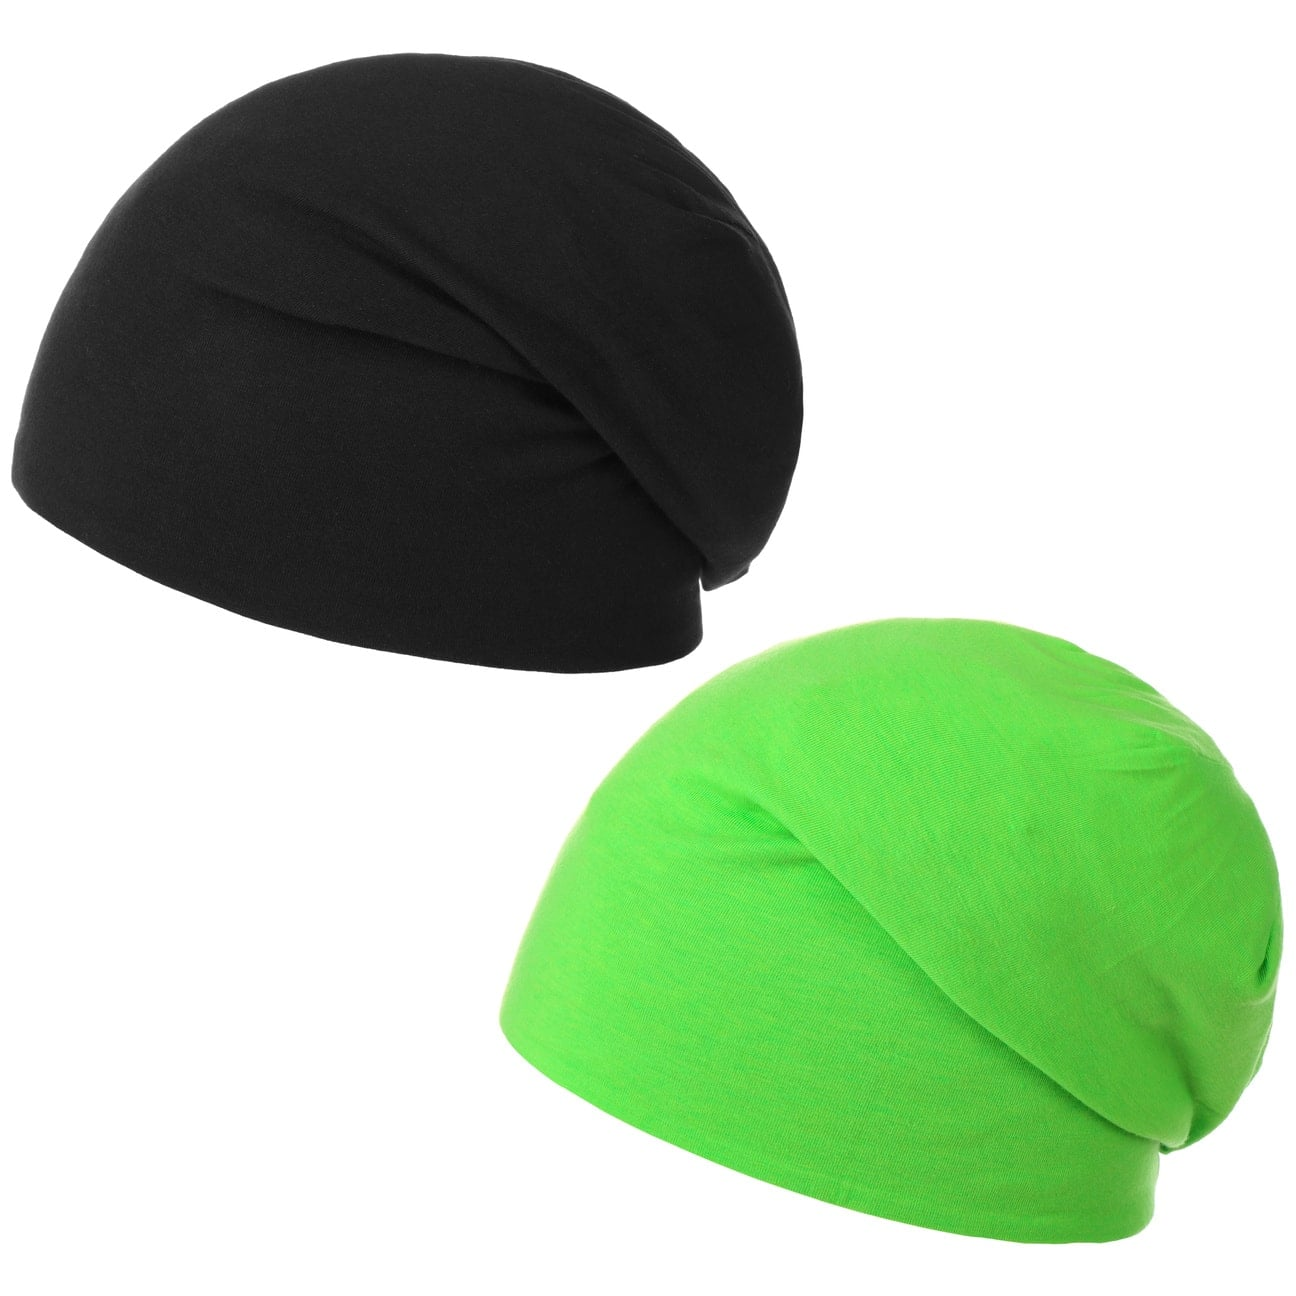 ... green 1 · Denver Reversible Jersey Beanie - black 1 ... 43cef40da45